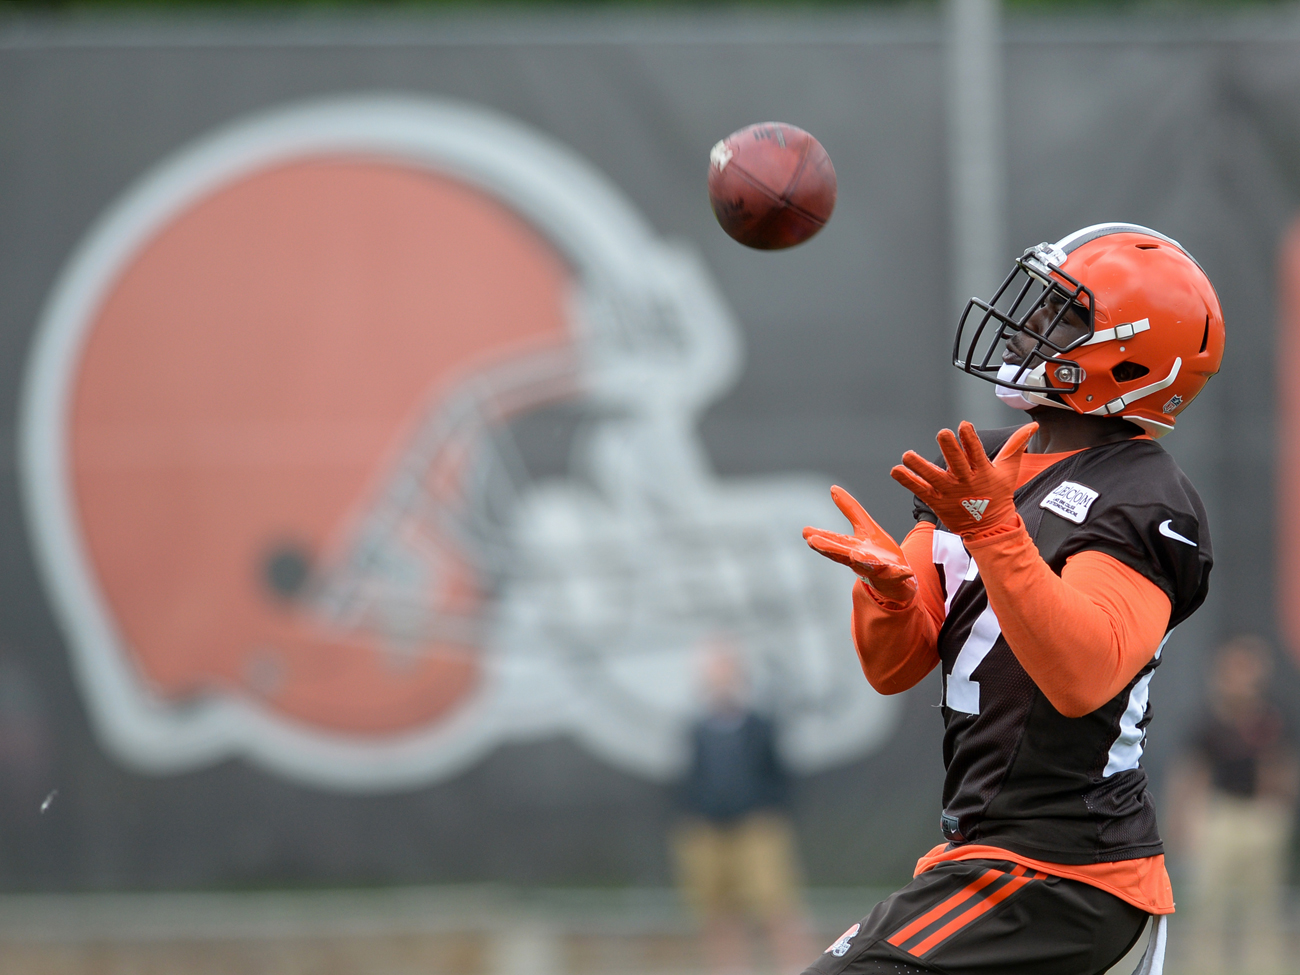 Rookie Jabrill Peppers will play a hybrid safety role and also return kicks for the Browns this season.